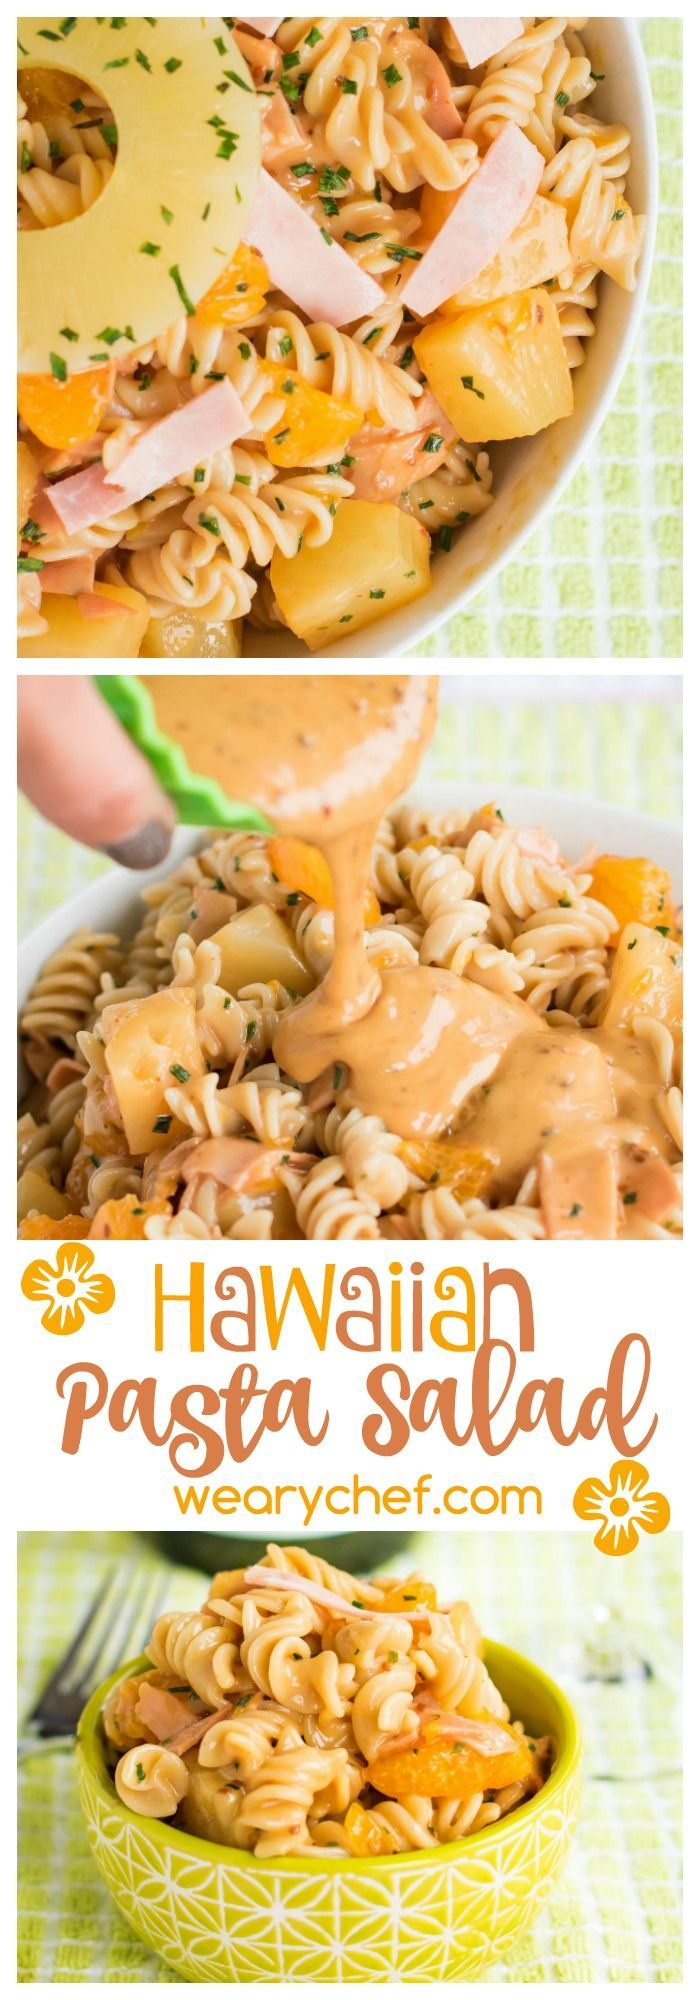 This sweet, tart, and savory Hawaiian Pasta Salad is a perfect grilling side dish recipe!